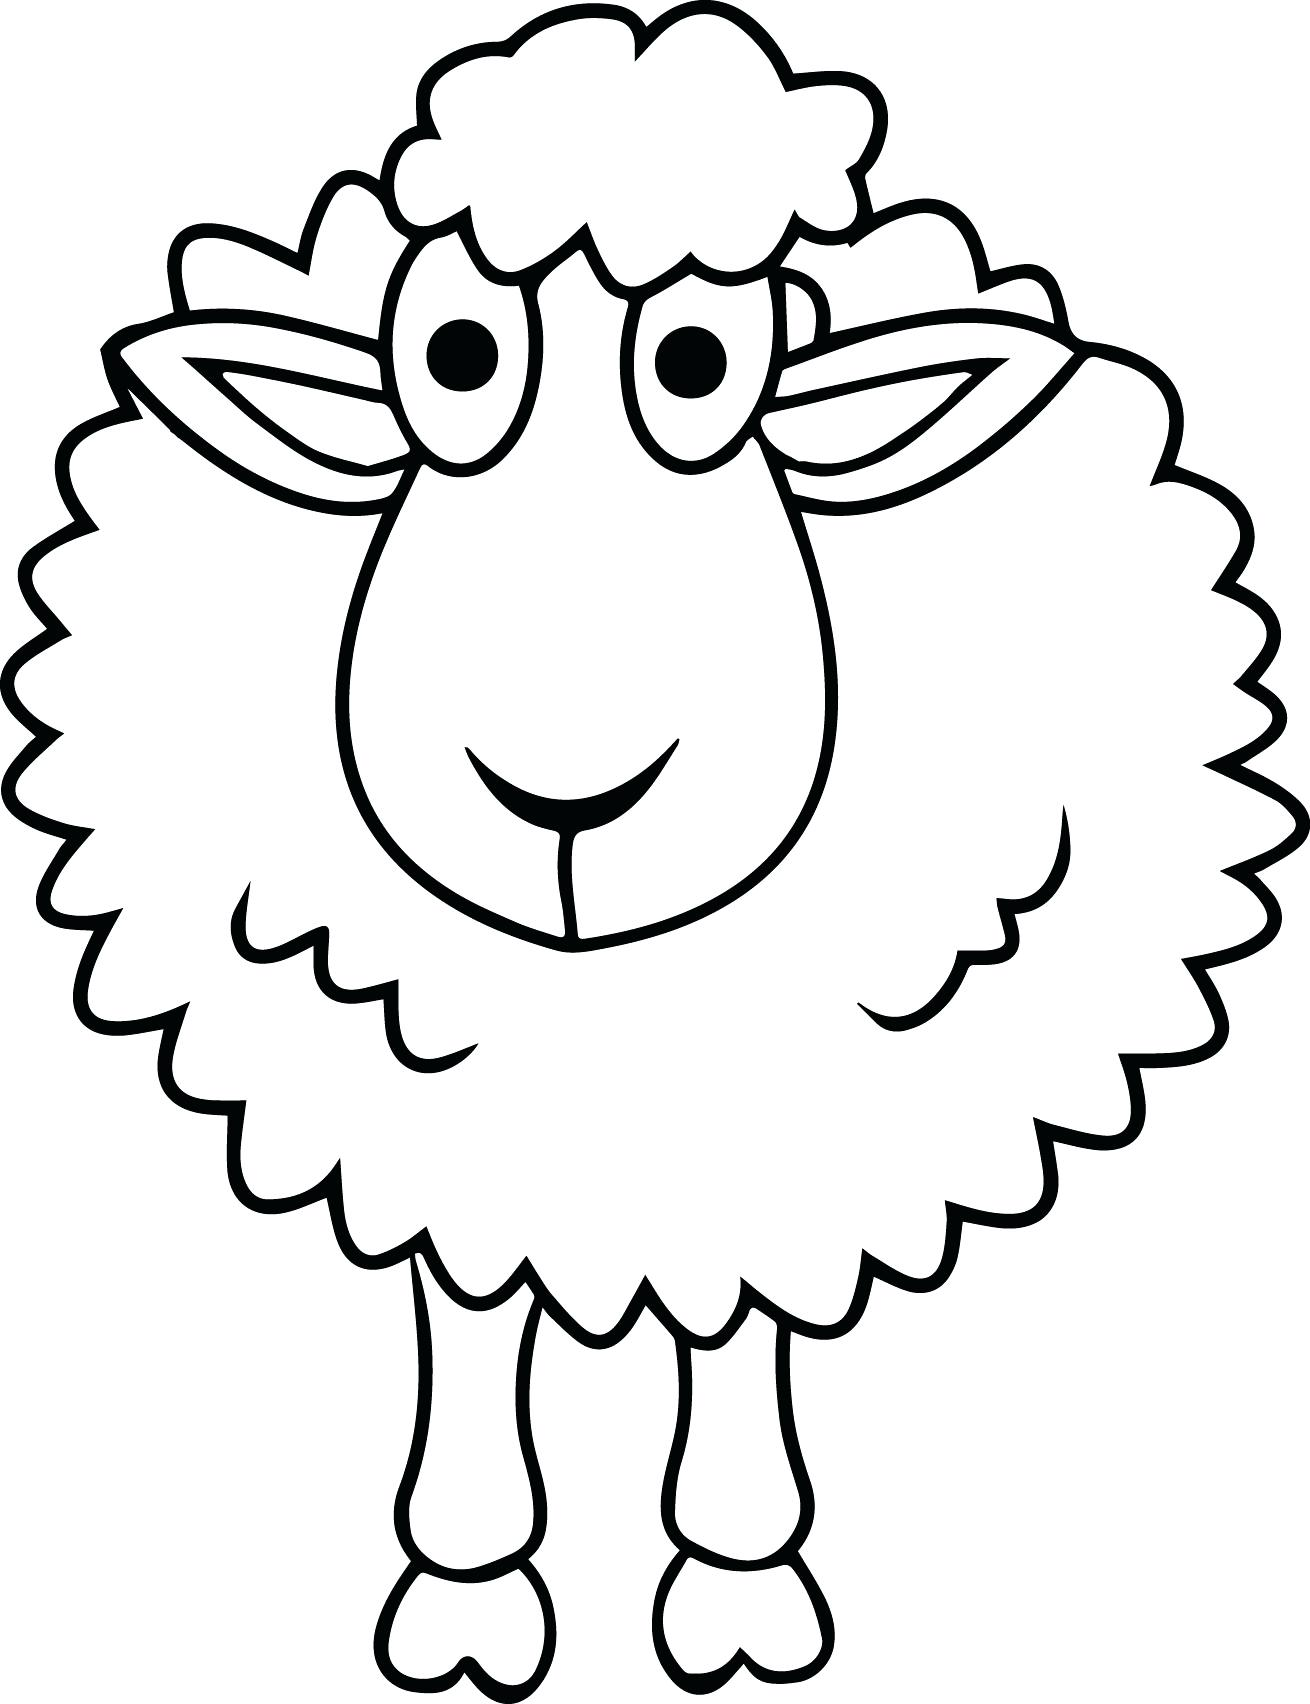 1310x1704 Sheets March Coloring Pages On For Kids With 106 Mesmerizing Sheep